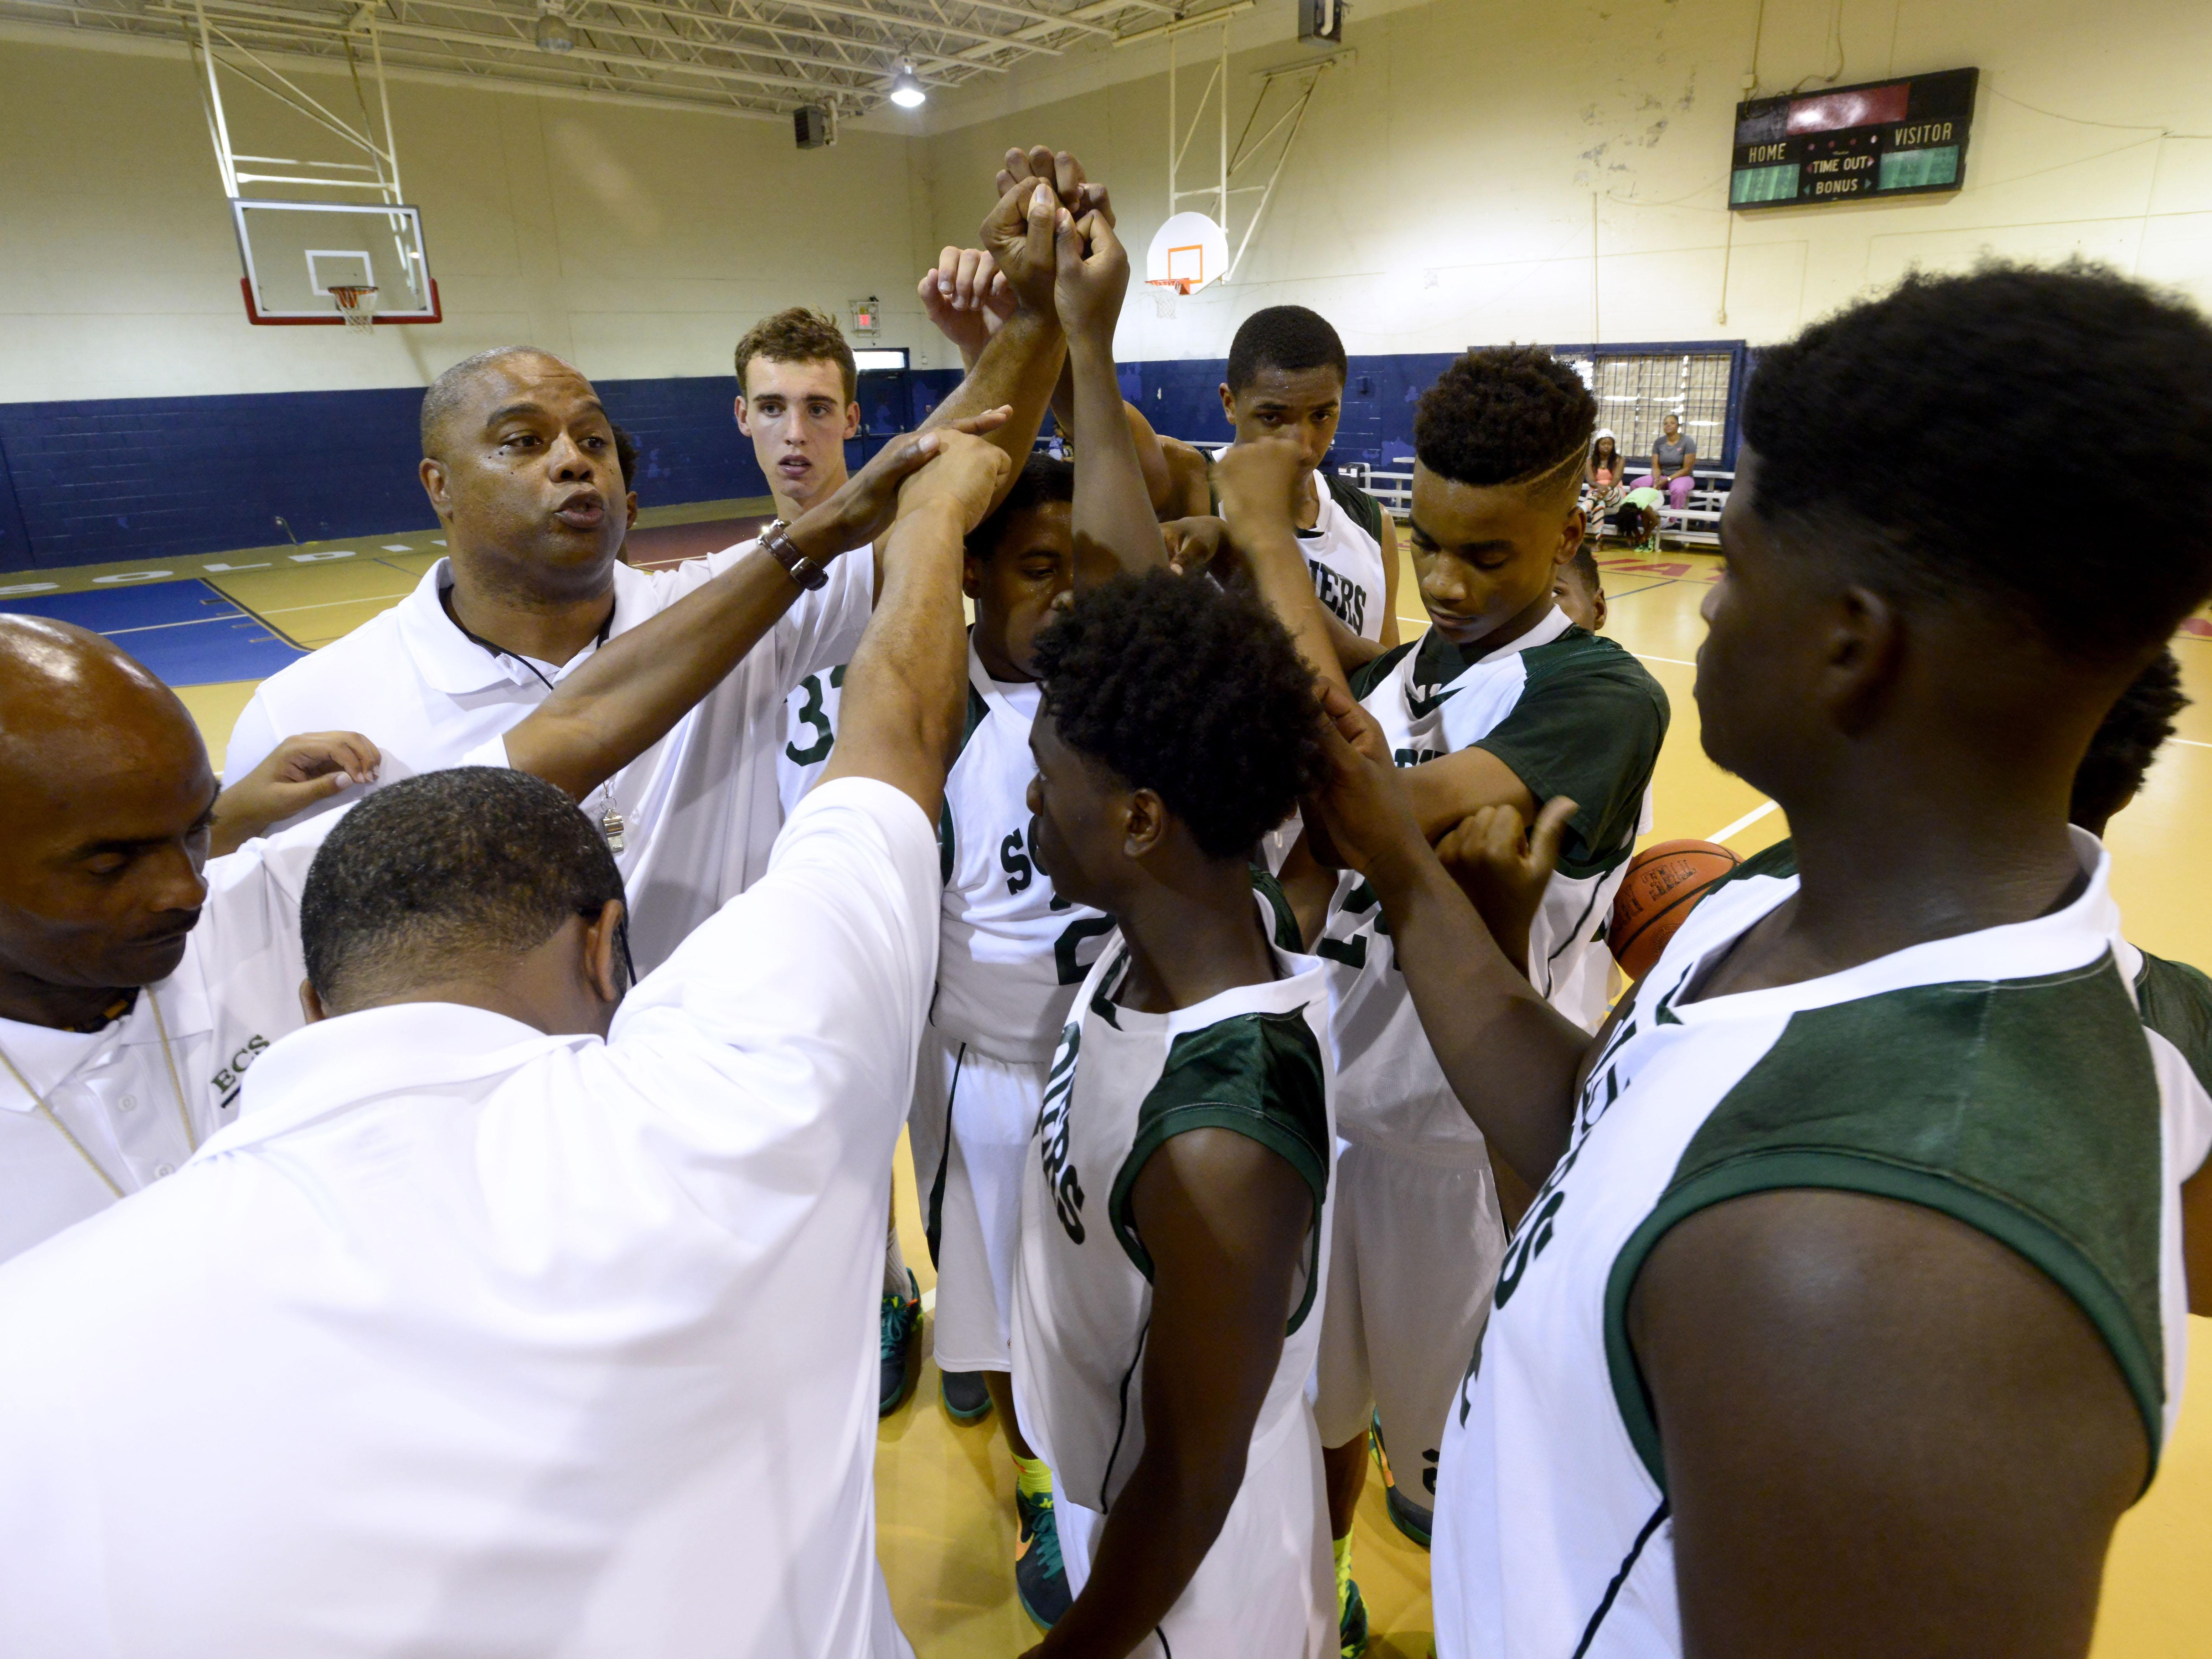 Head coach Dwayne Kelley gathers his players during practice on Monday at the Salvation Army gymnasium. The team is representing Pensacola in the AAU Nationals in Memphis this weekend.